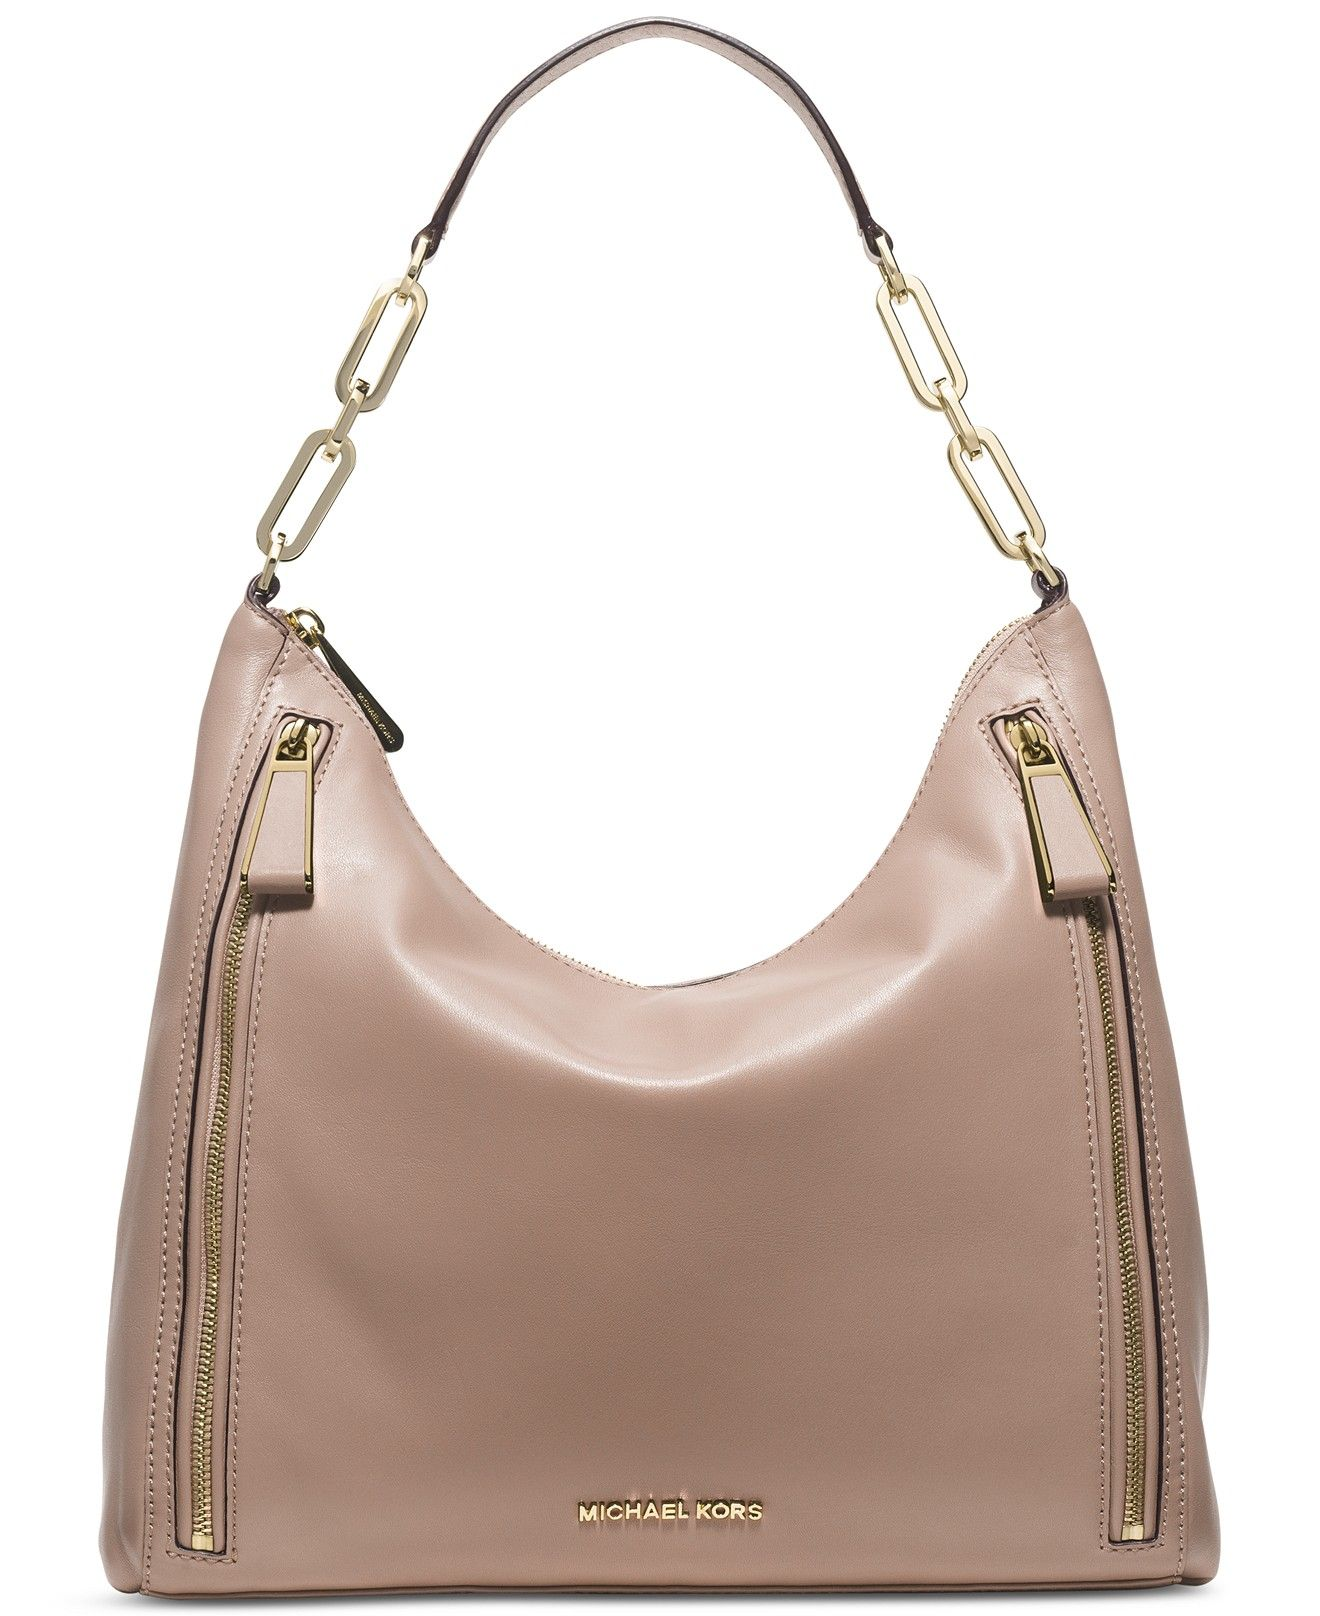 75408e240a8a MICHAEL Michael Kors Matilda Large Shoulder Bag - Sale & Clearance -  Handbags & Accessories - Macy's